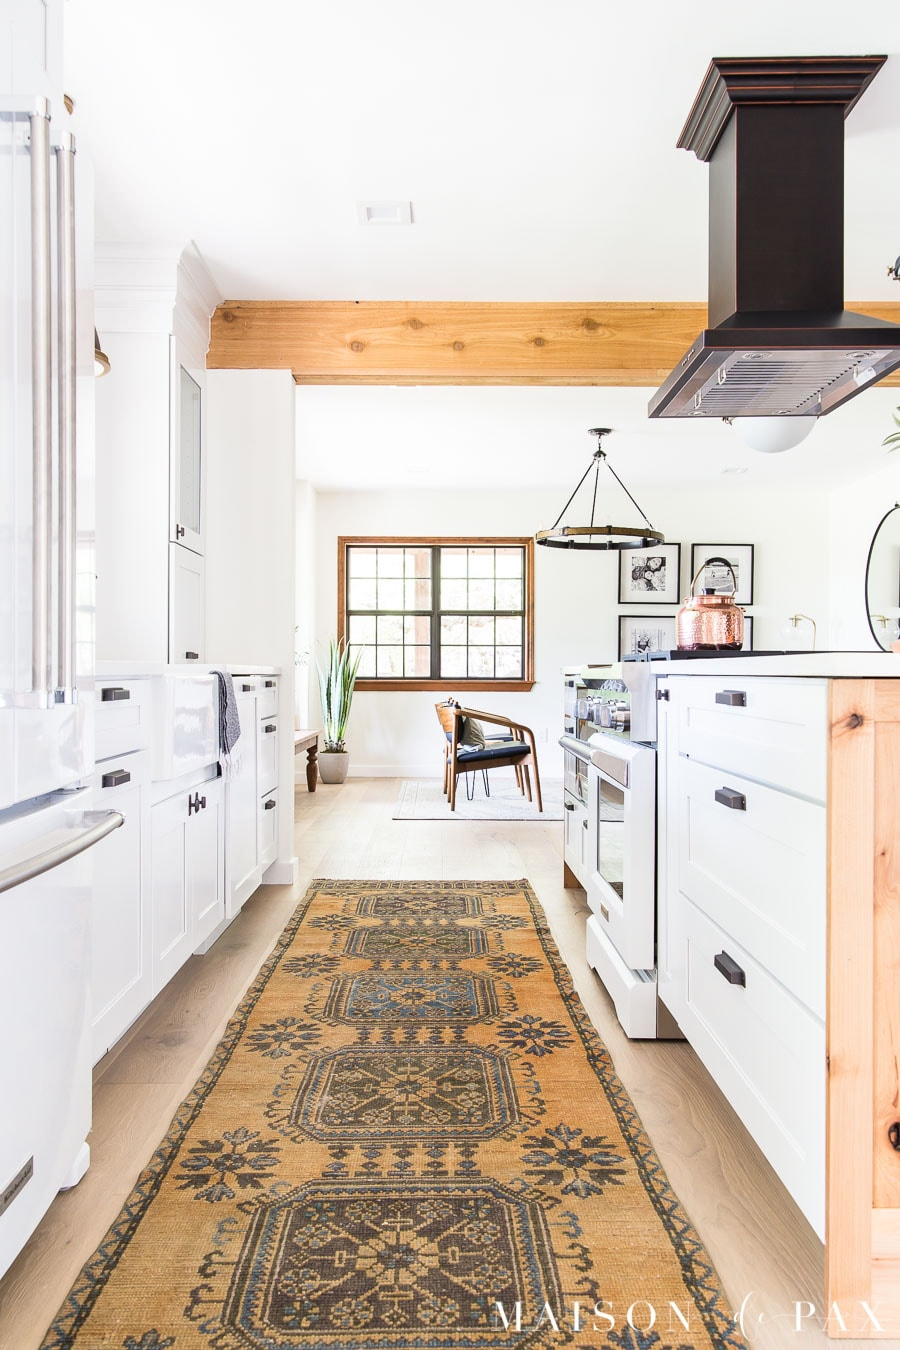 vintage turkish runner in kitchen with big island | Maison de Pax